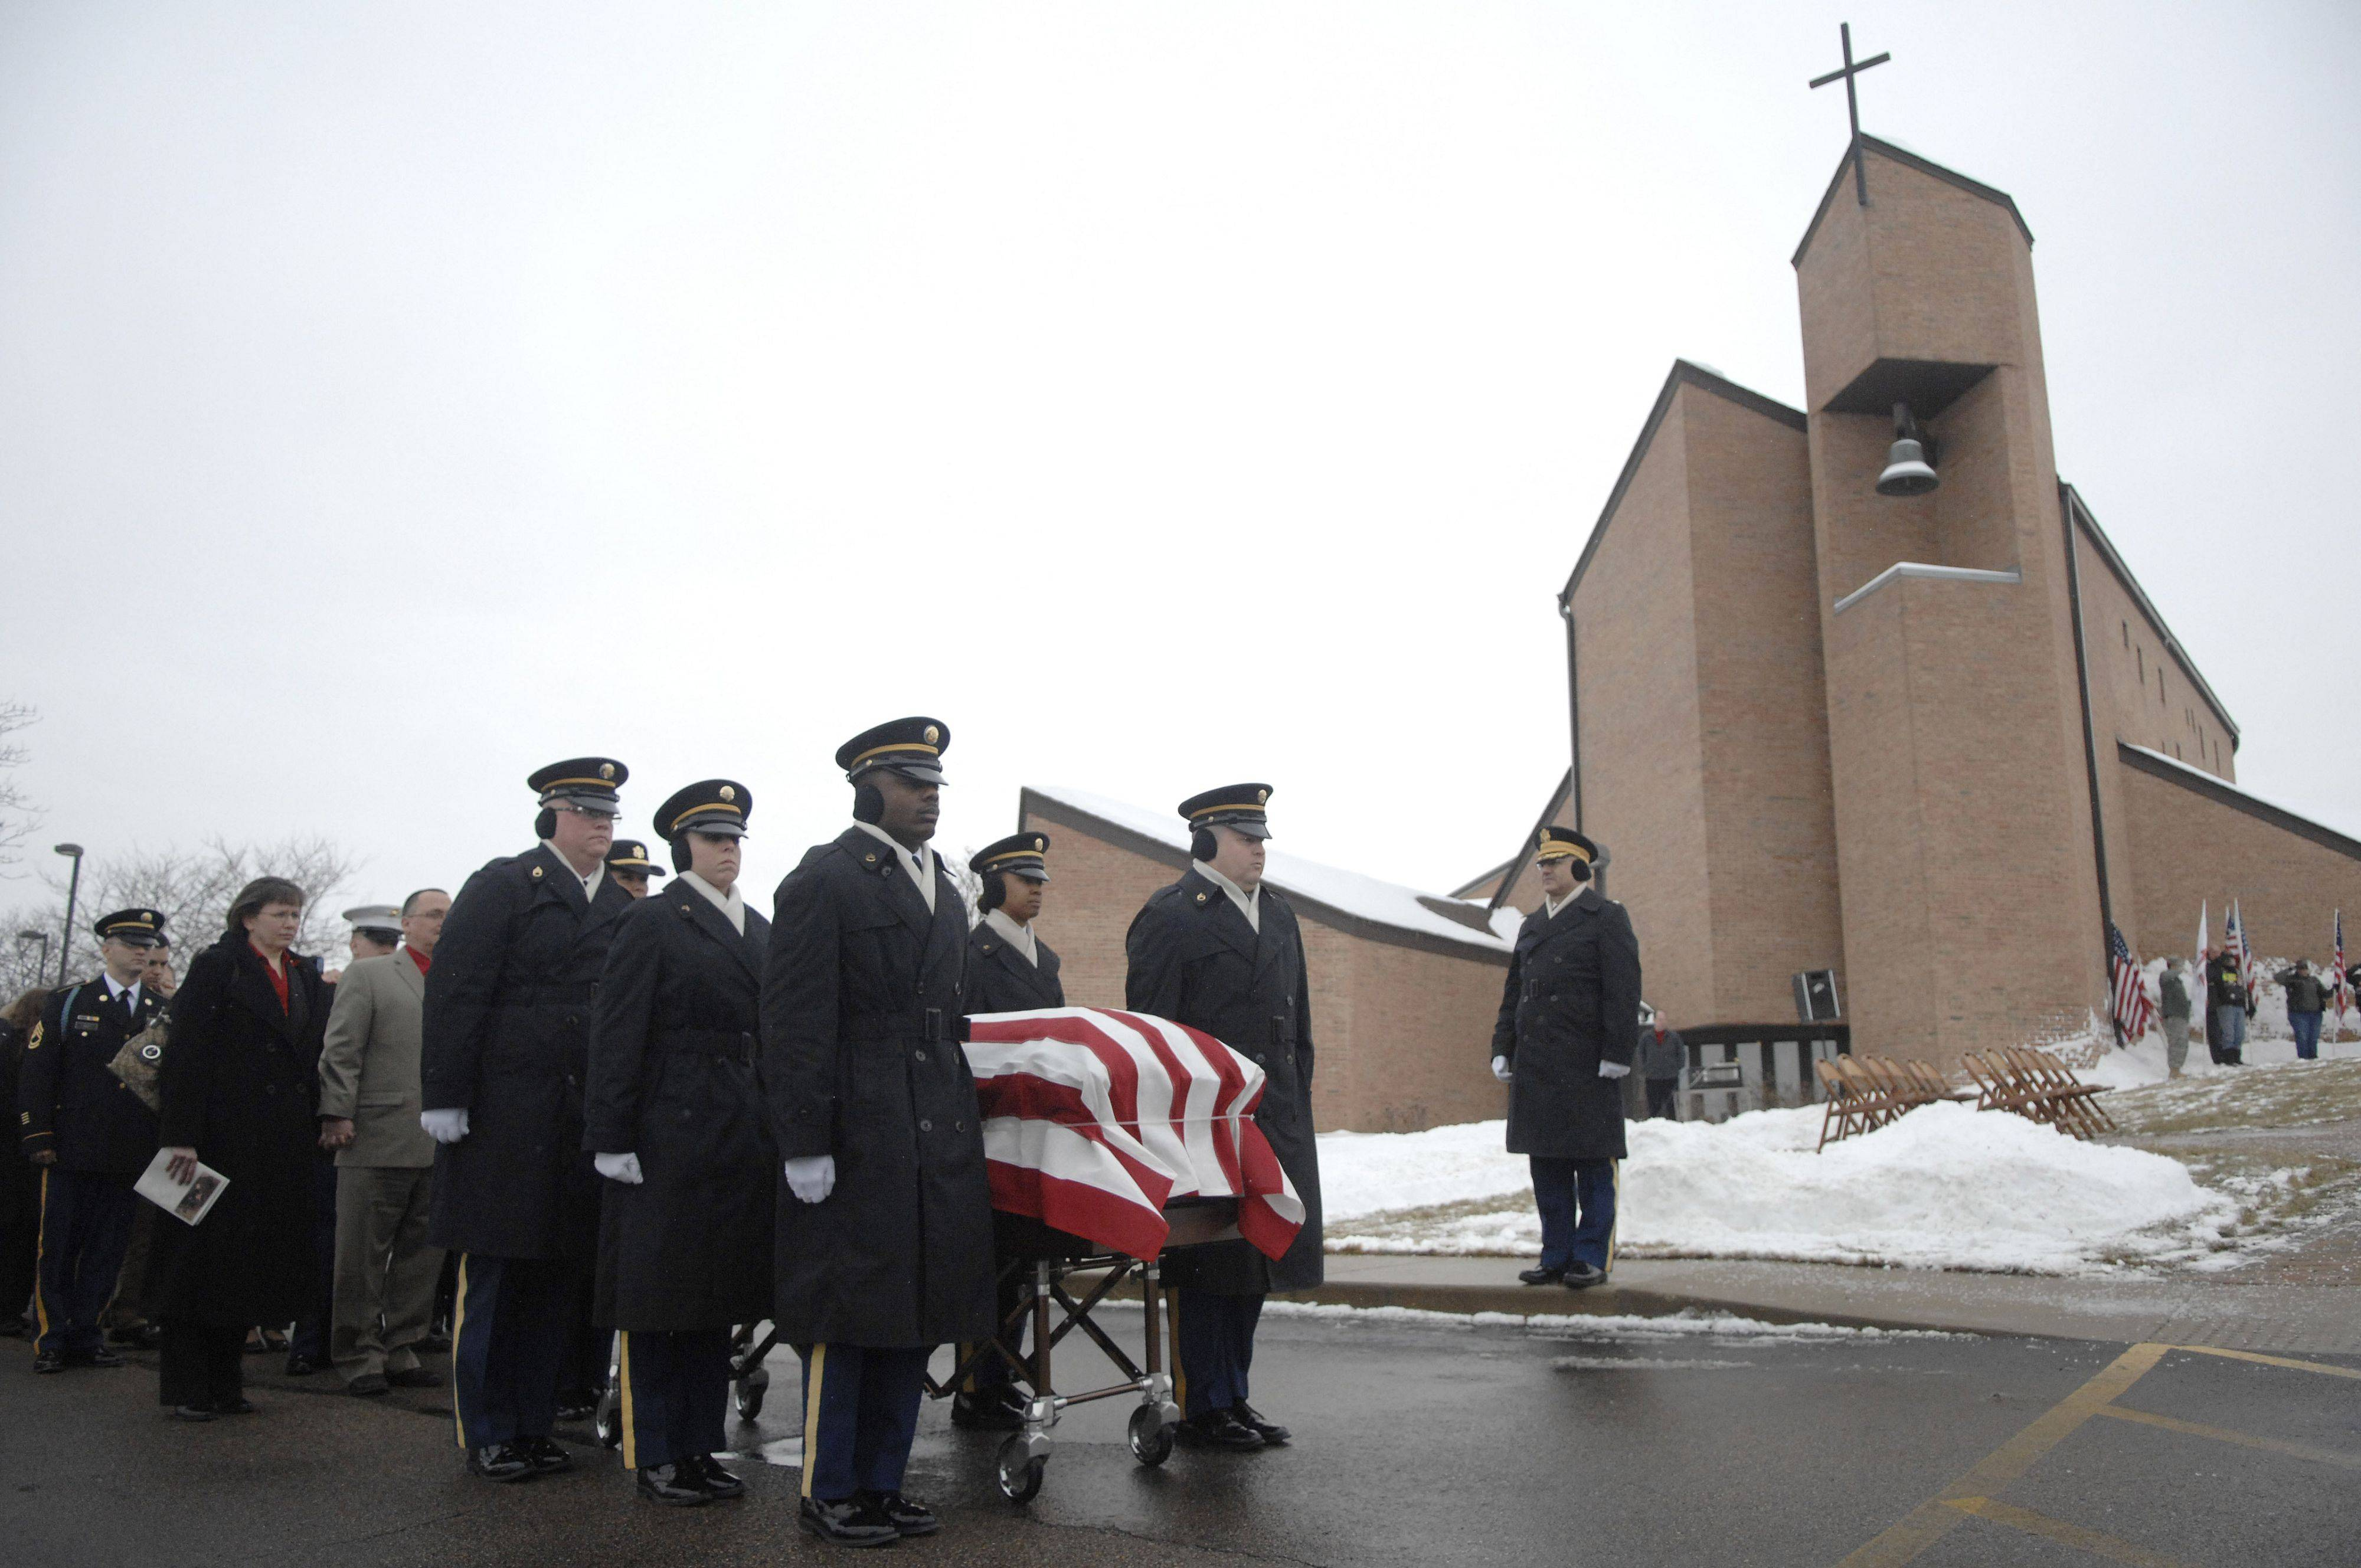 Images: Christopher Patterson Funeral